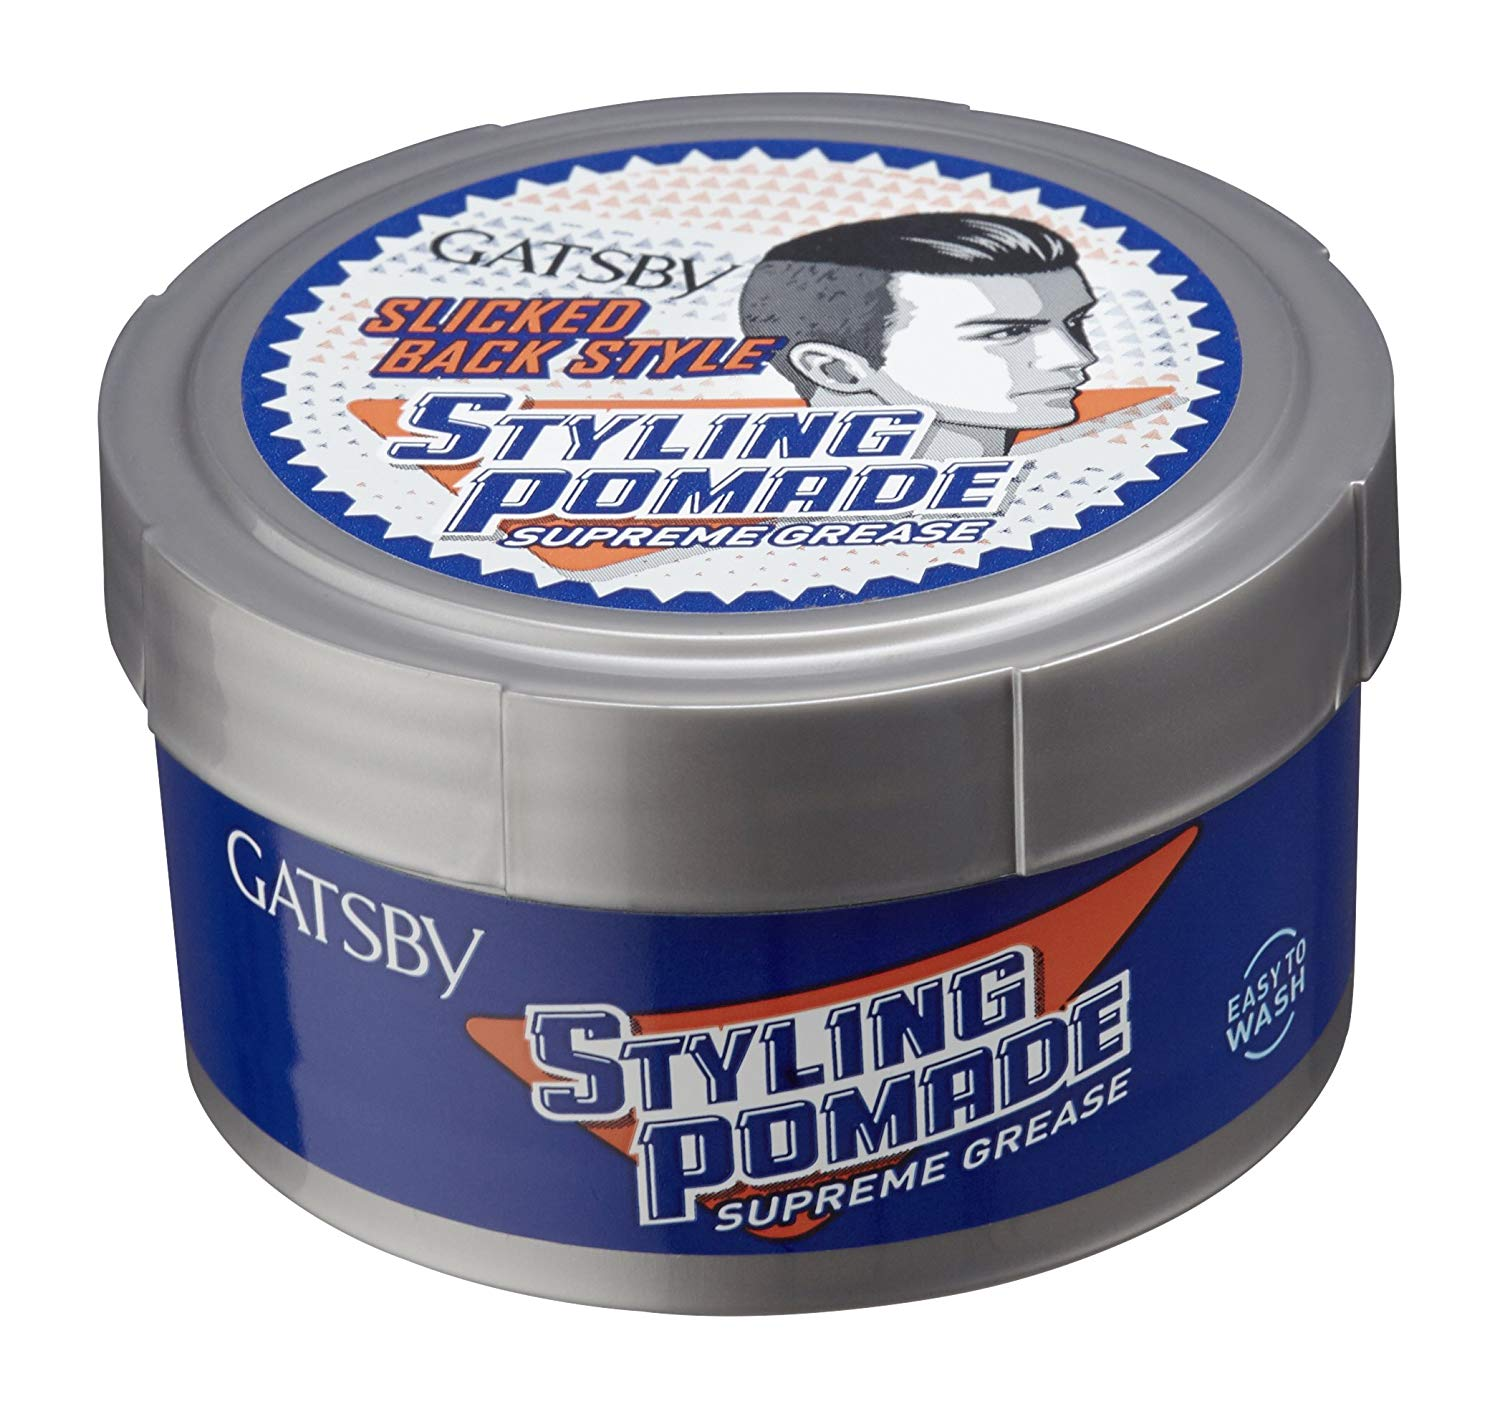 Gatsby Styling Pomade - Supreme Grease , 80gm